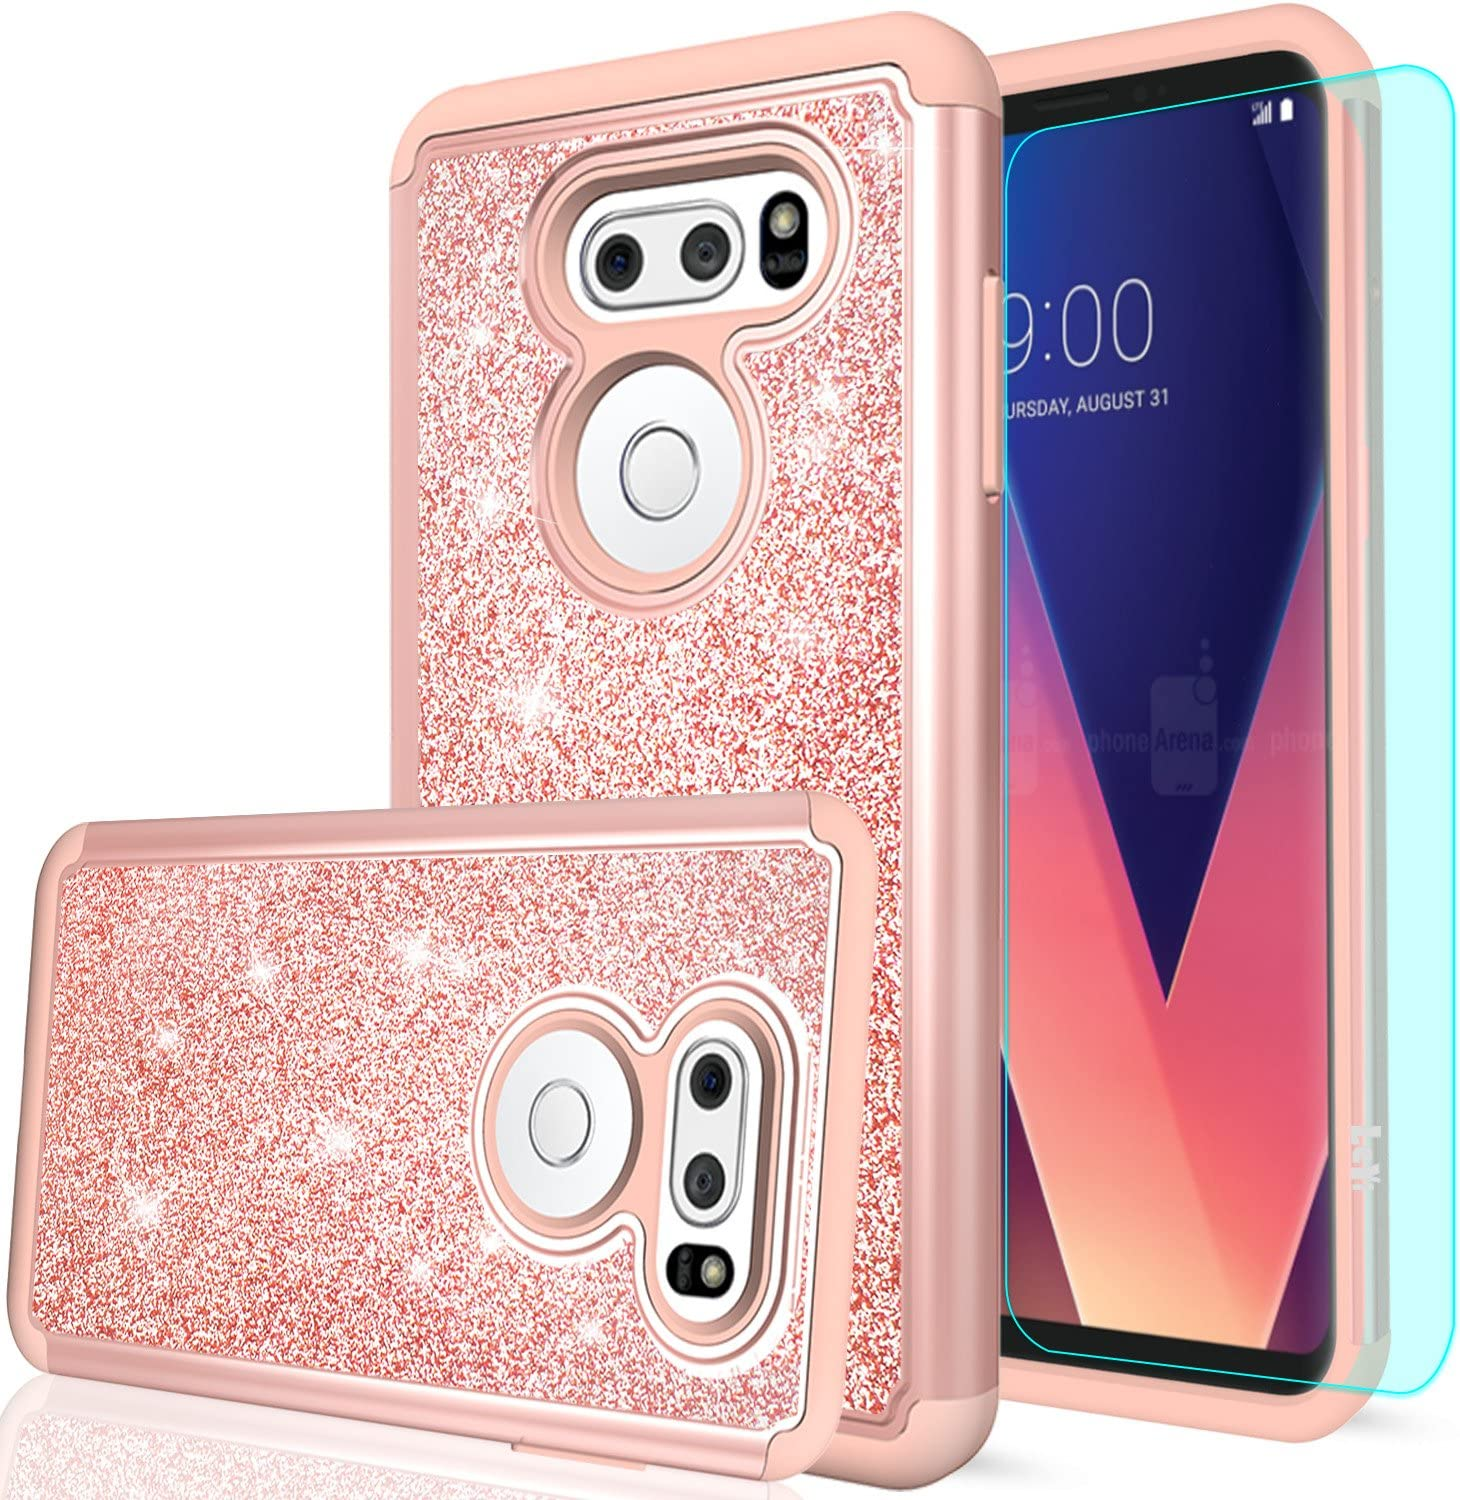 LG V30 Case, LG V35 ThinQ Case, LG V30+ / V30 Plus/ V30S ThinQ Case with HD Screen Protector for Girls Women, LeYi Glitter Bling Dual Layer Heavy Duty Phone Case for LG V30 / LG V35 ThinQ TP Rose Gold